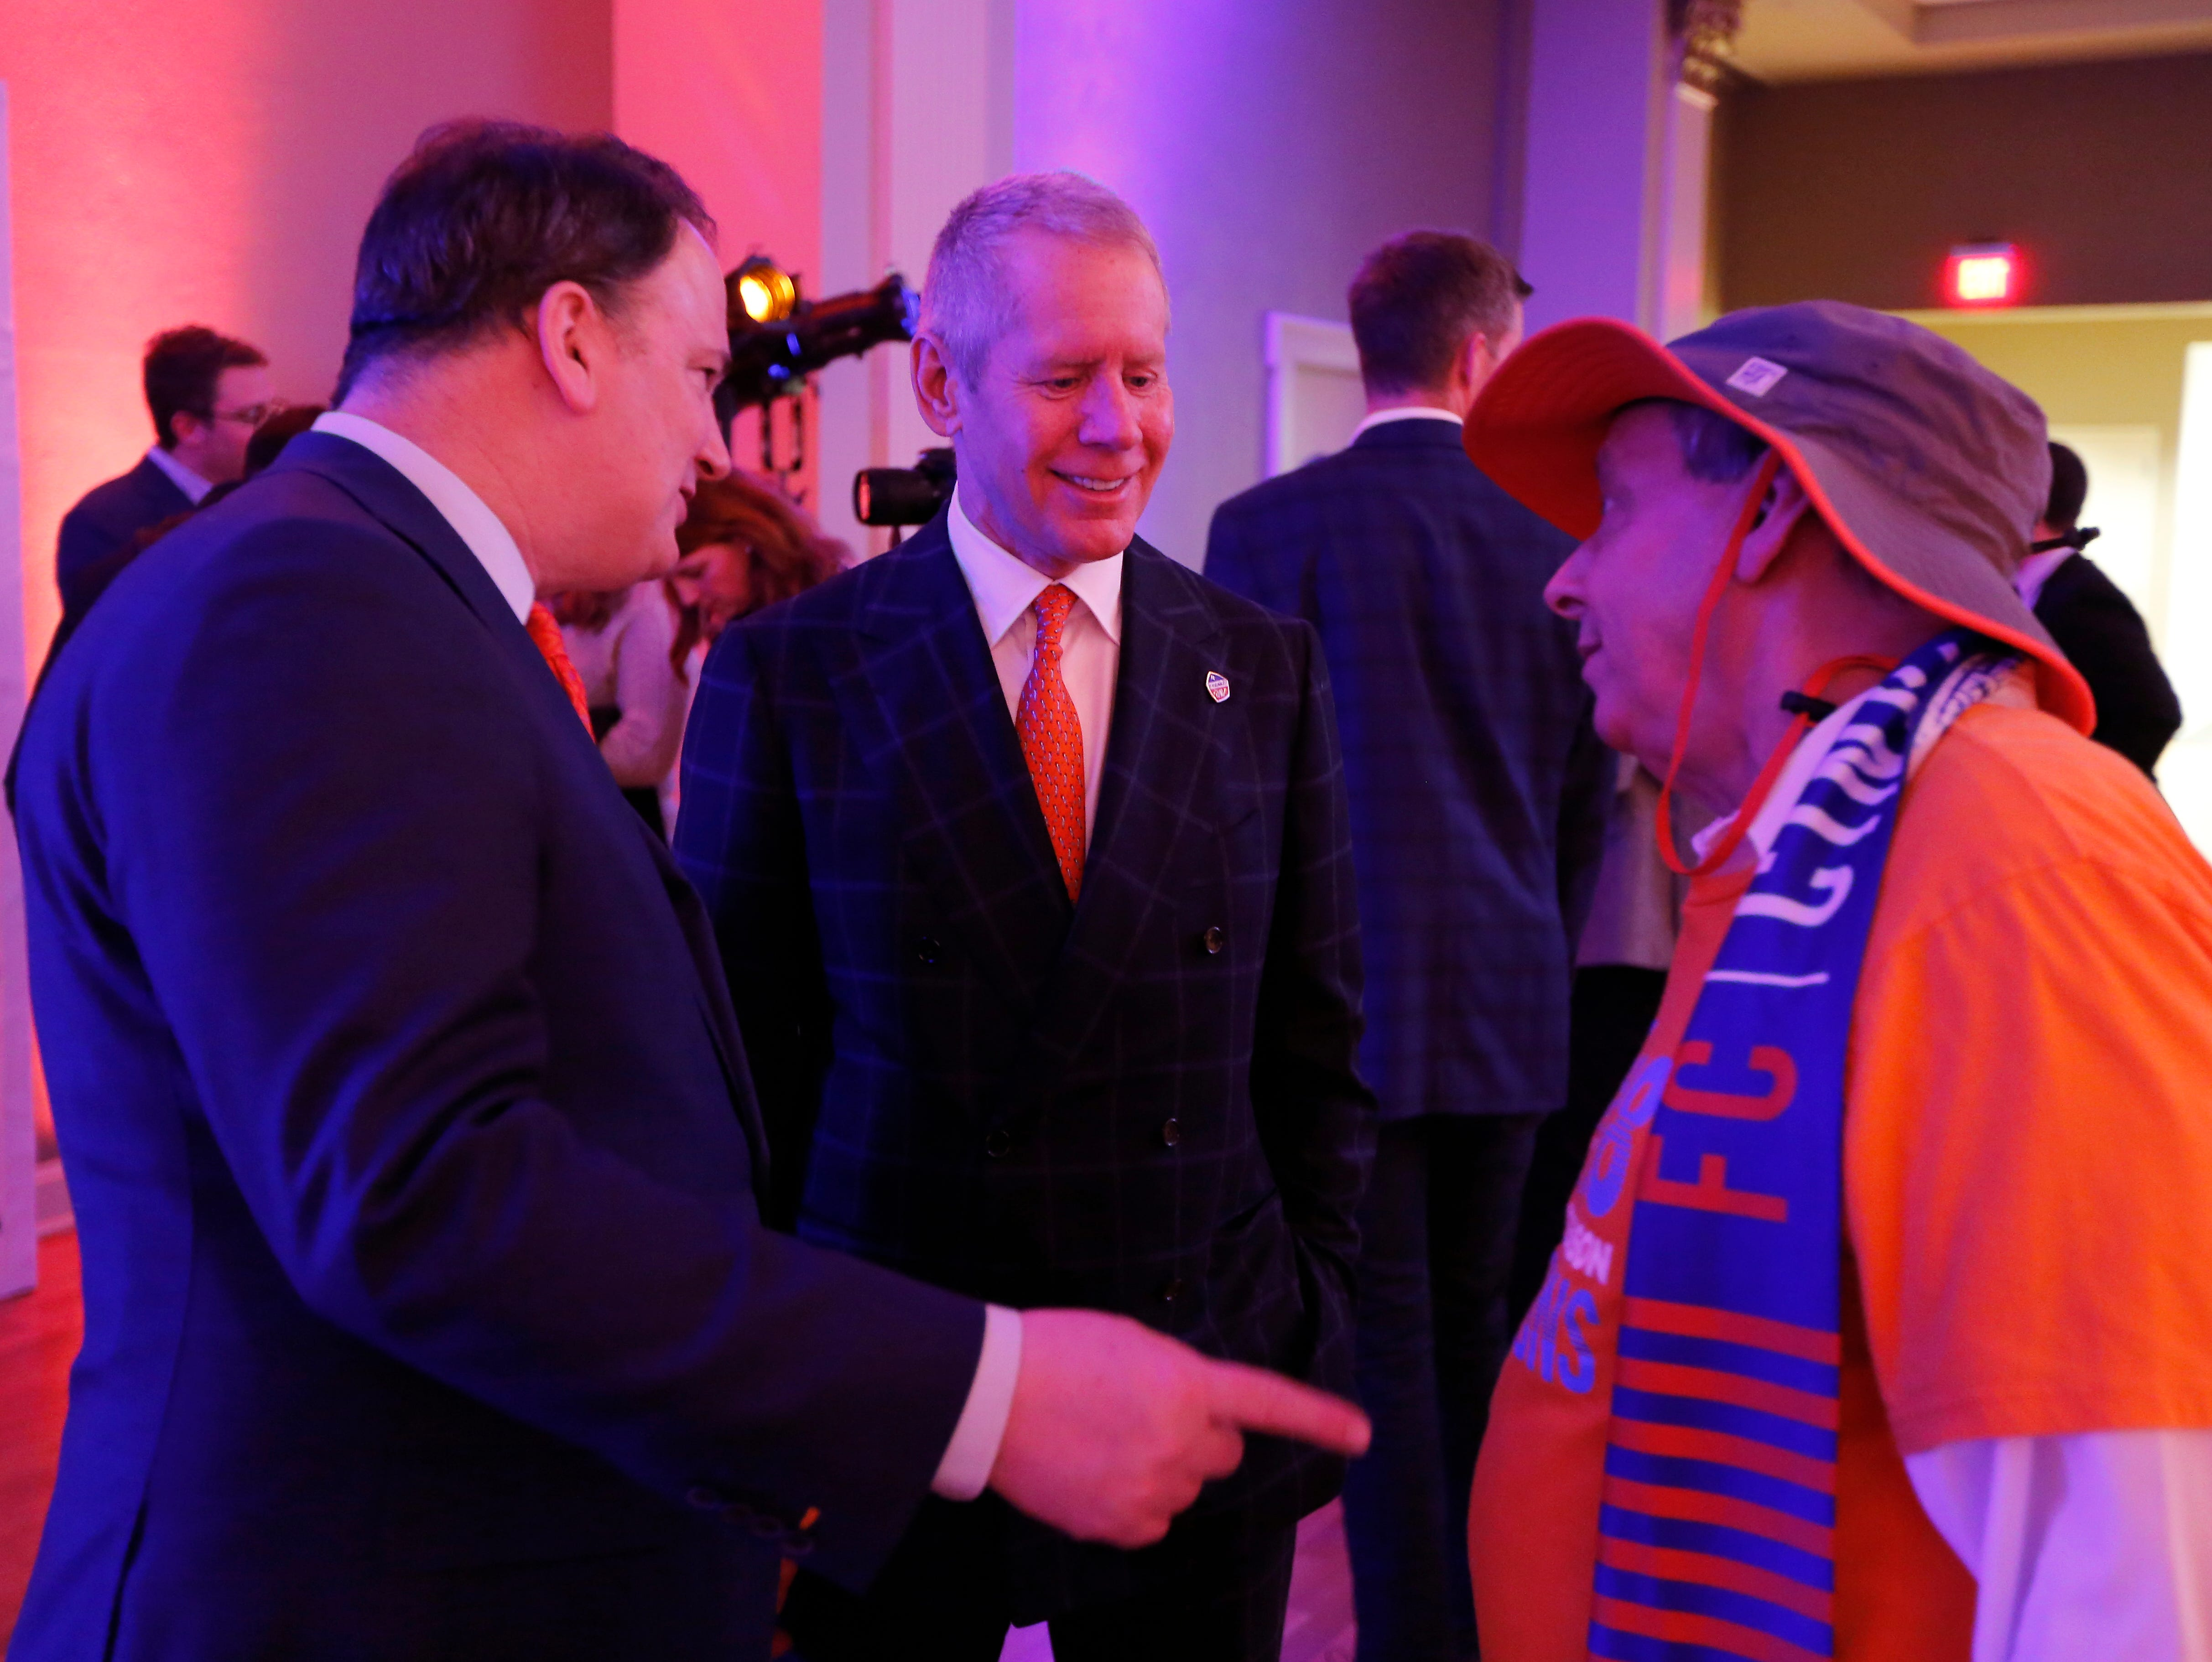 Team general manager Jeff Berding and owner Carl Lindner III talk with fans during an event to unveil FC Cincinnati's jersey for the team's inaugural season in Major League Soccer at the Music Hall Ballroom in the Over-the-Rhine neighborhood of Cincinnati on Monday, Feb. 11, 2019.